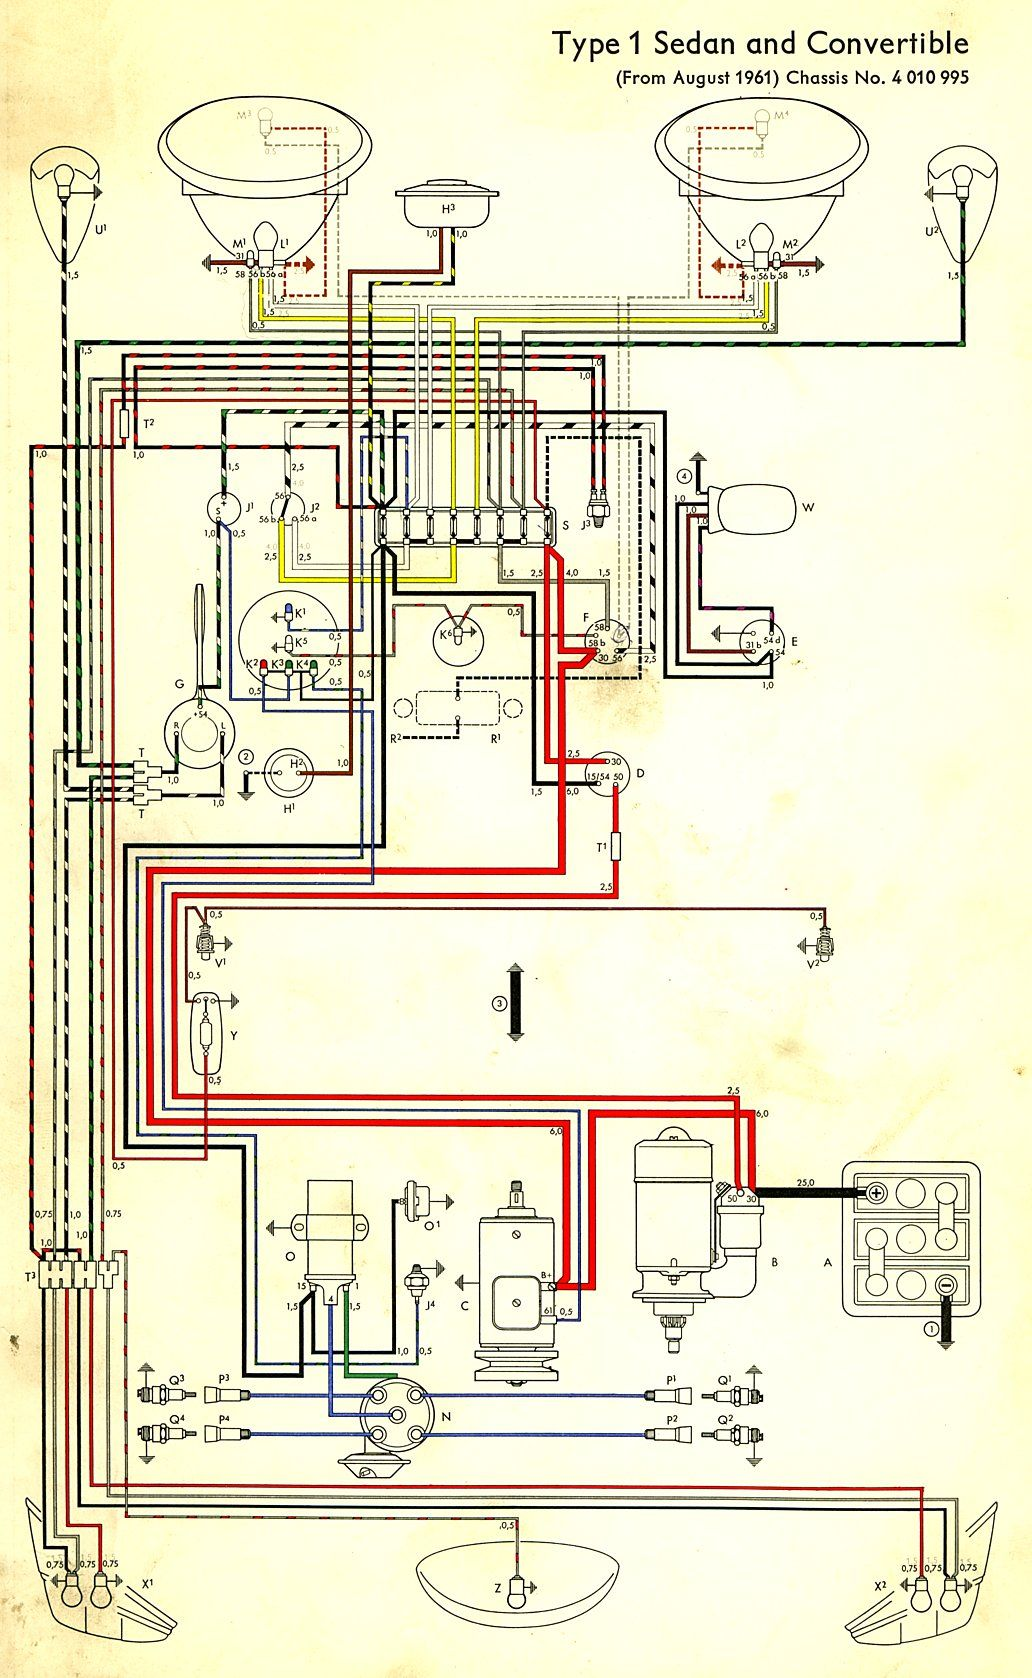 wiring diagram in color 1964 vw bug beetle convertible the samba rh pinterest com VW Beetle Fuse Box Diagram 1972 VW Beetle Wiring Diagram